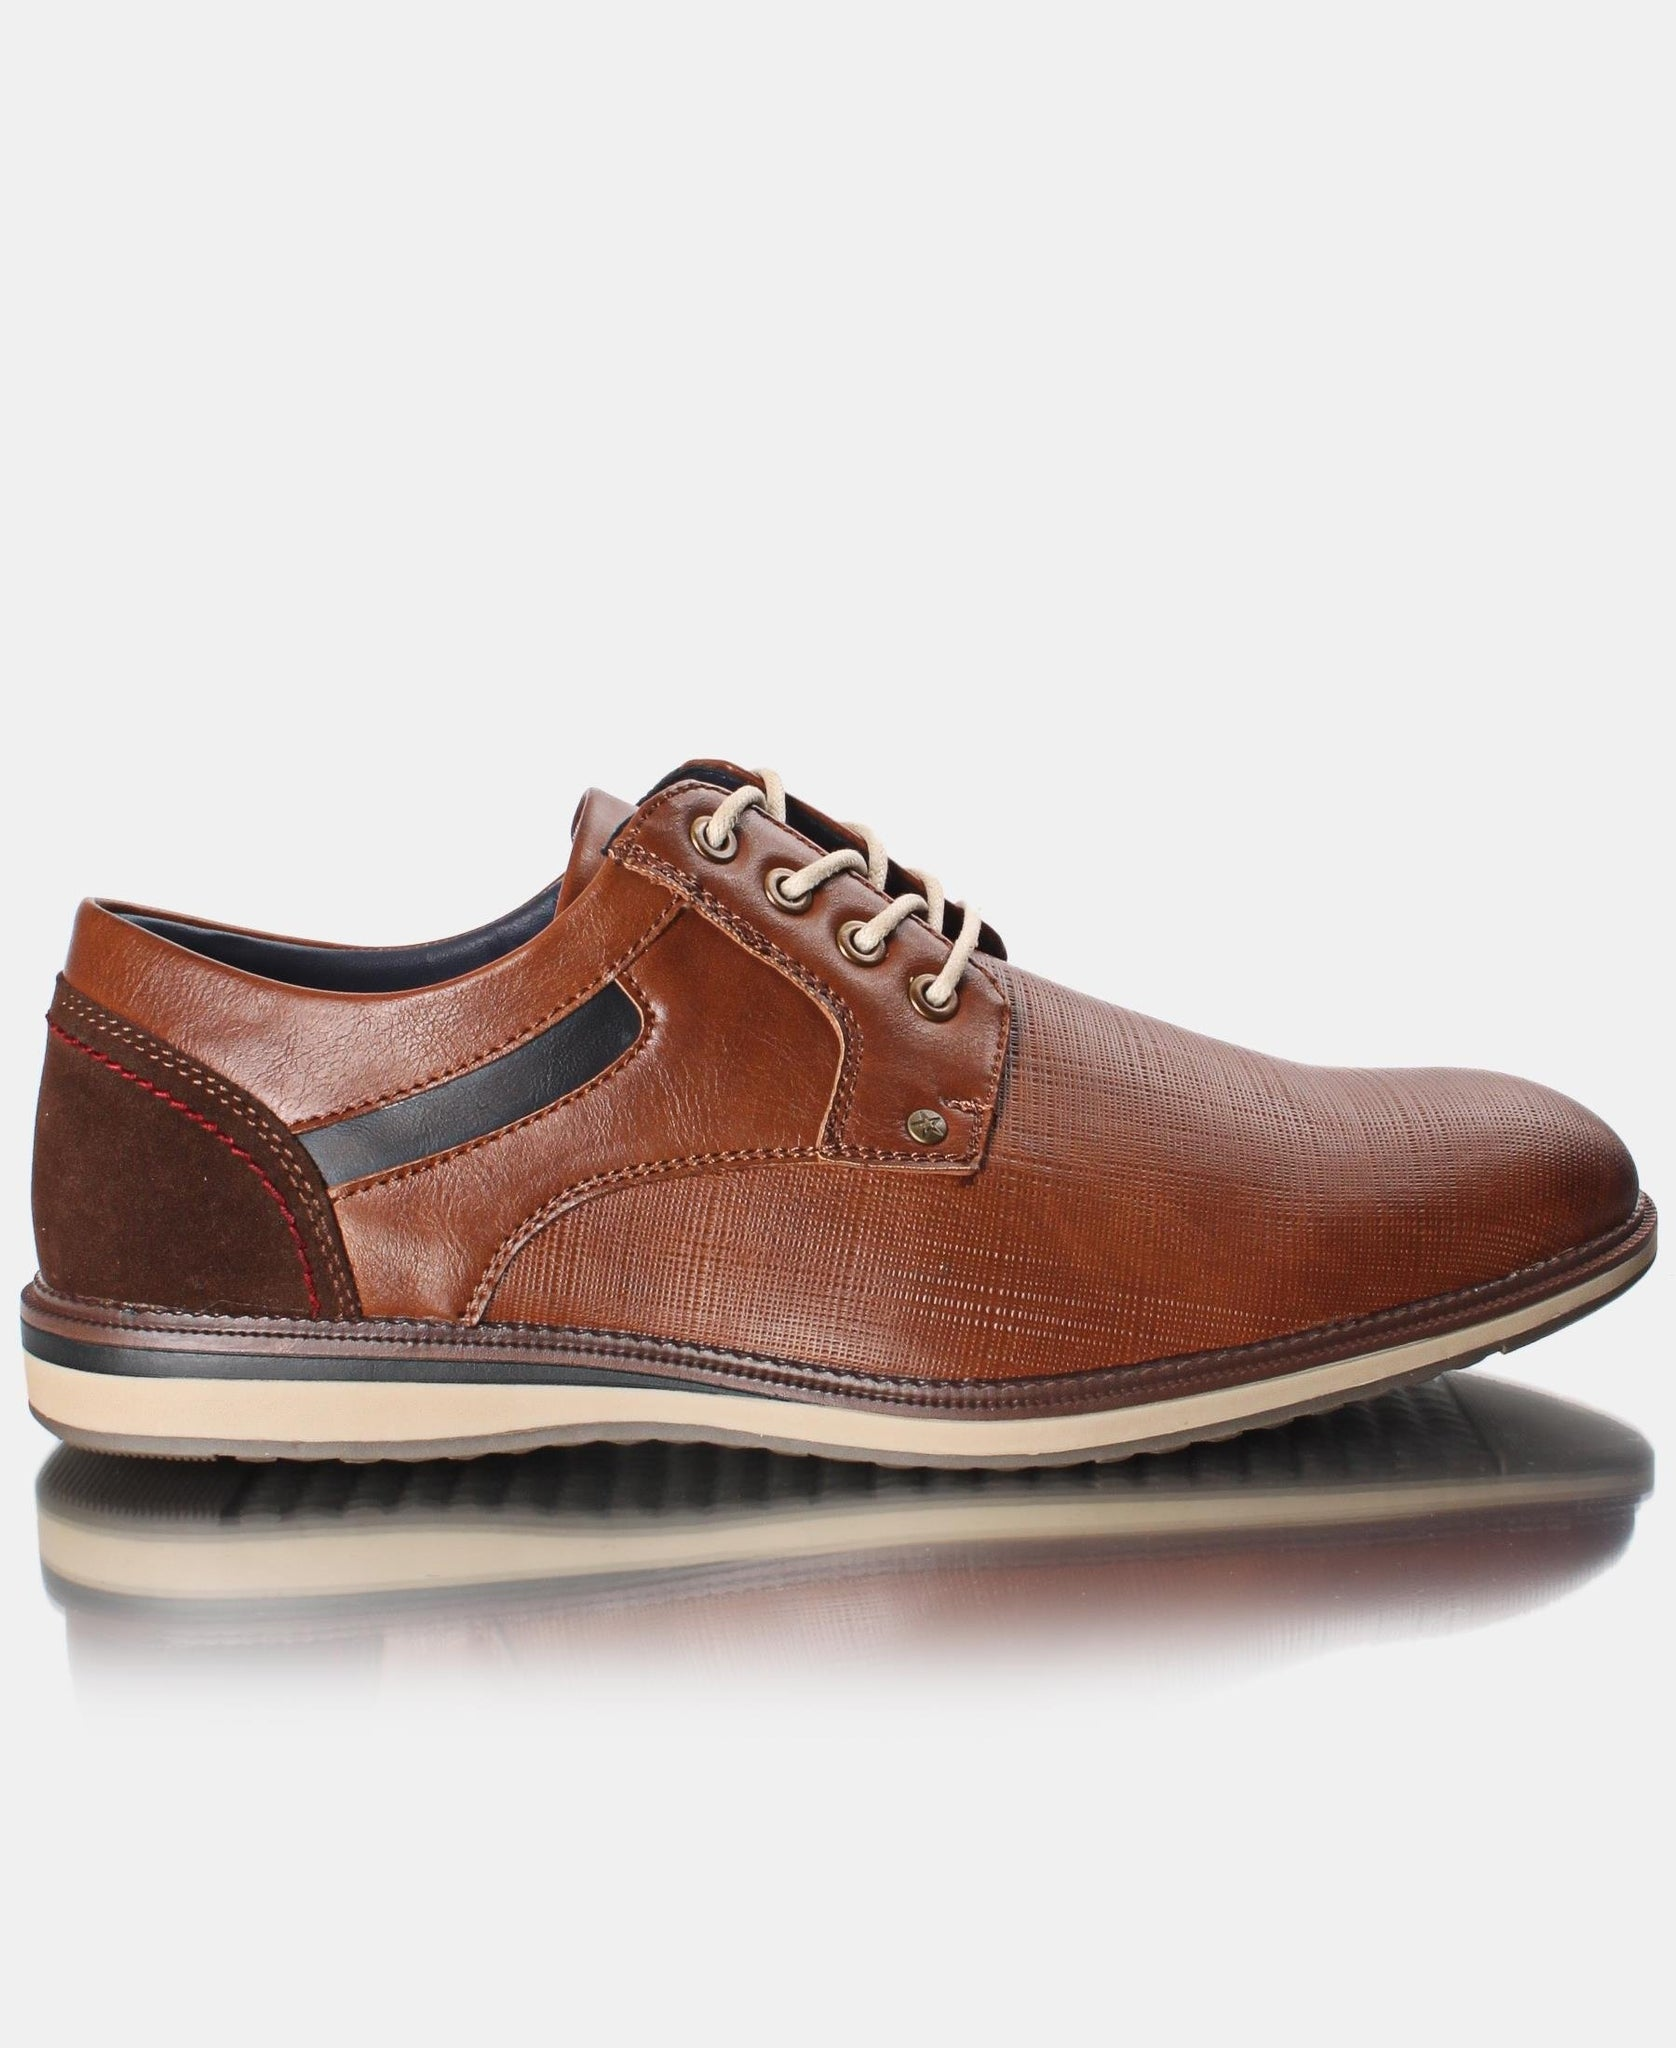 Men's Lace up Casuals - Tan